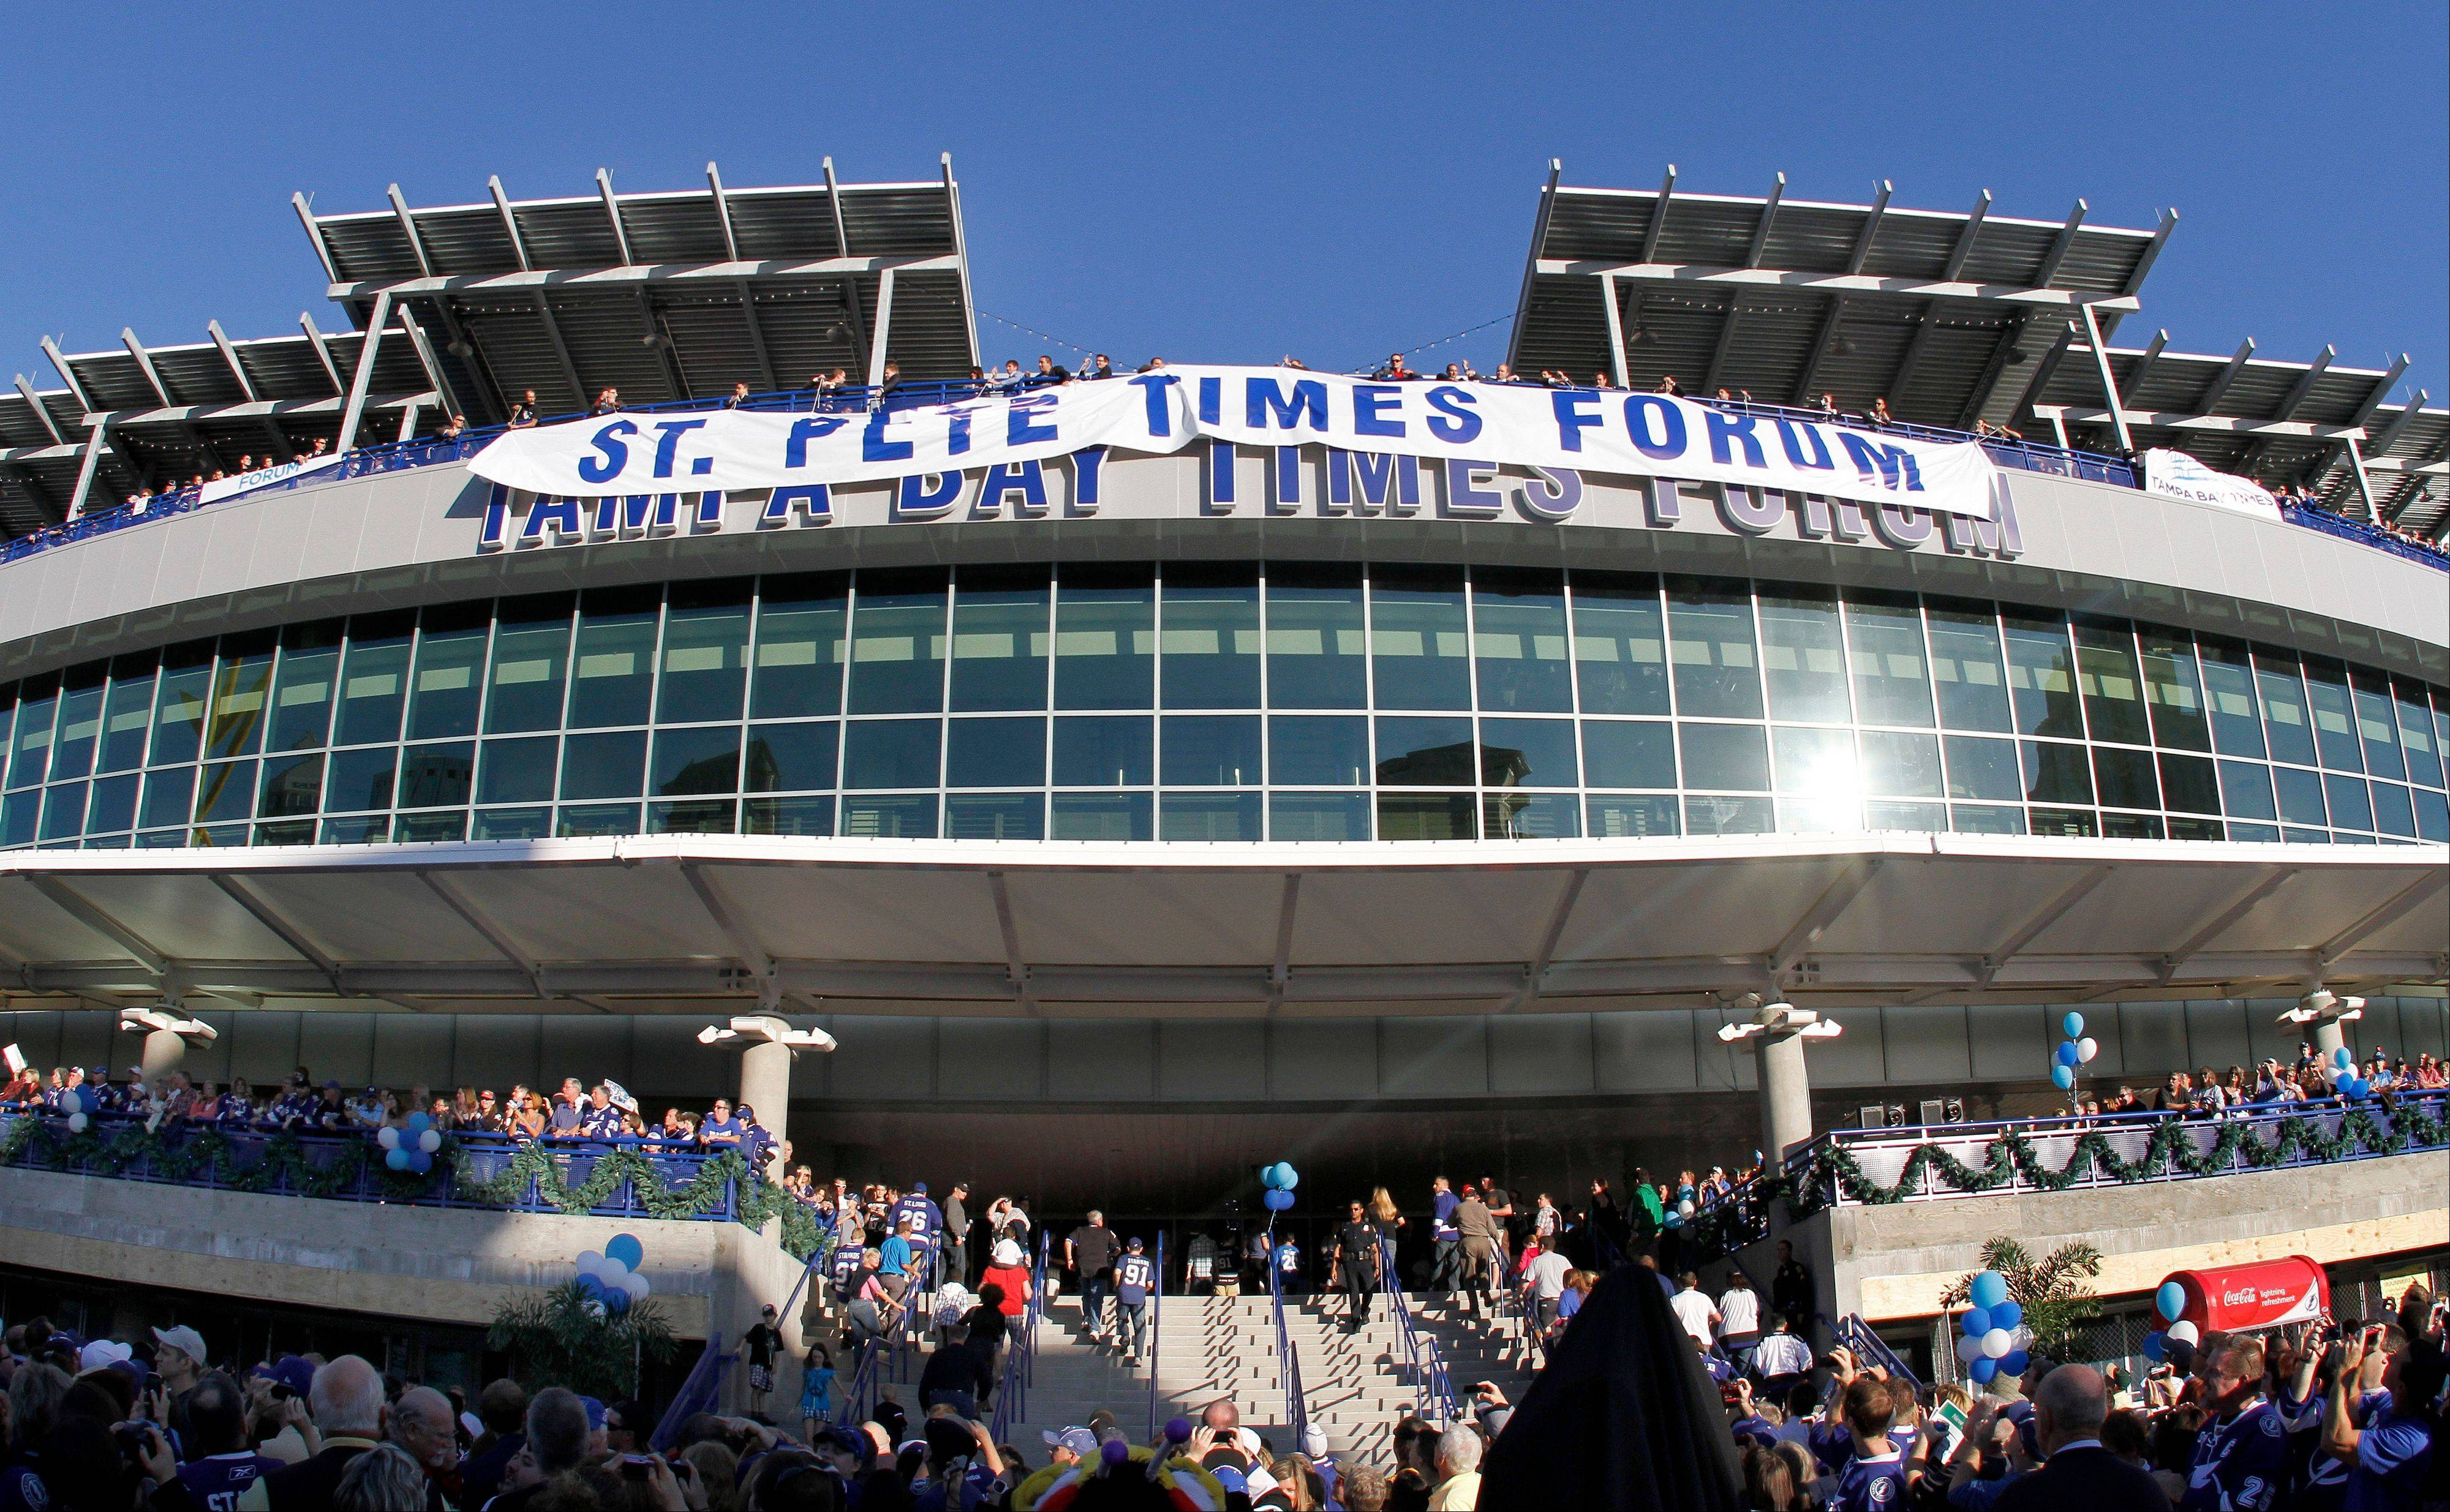 The St. Pete Times Forum unveils its new name, The Tampa Bay Times Forum, before the start of an NHL hockey game between the Tampa Bay Lightning and Carolina Hurricanes.